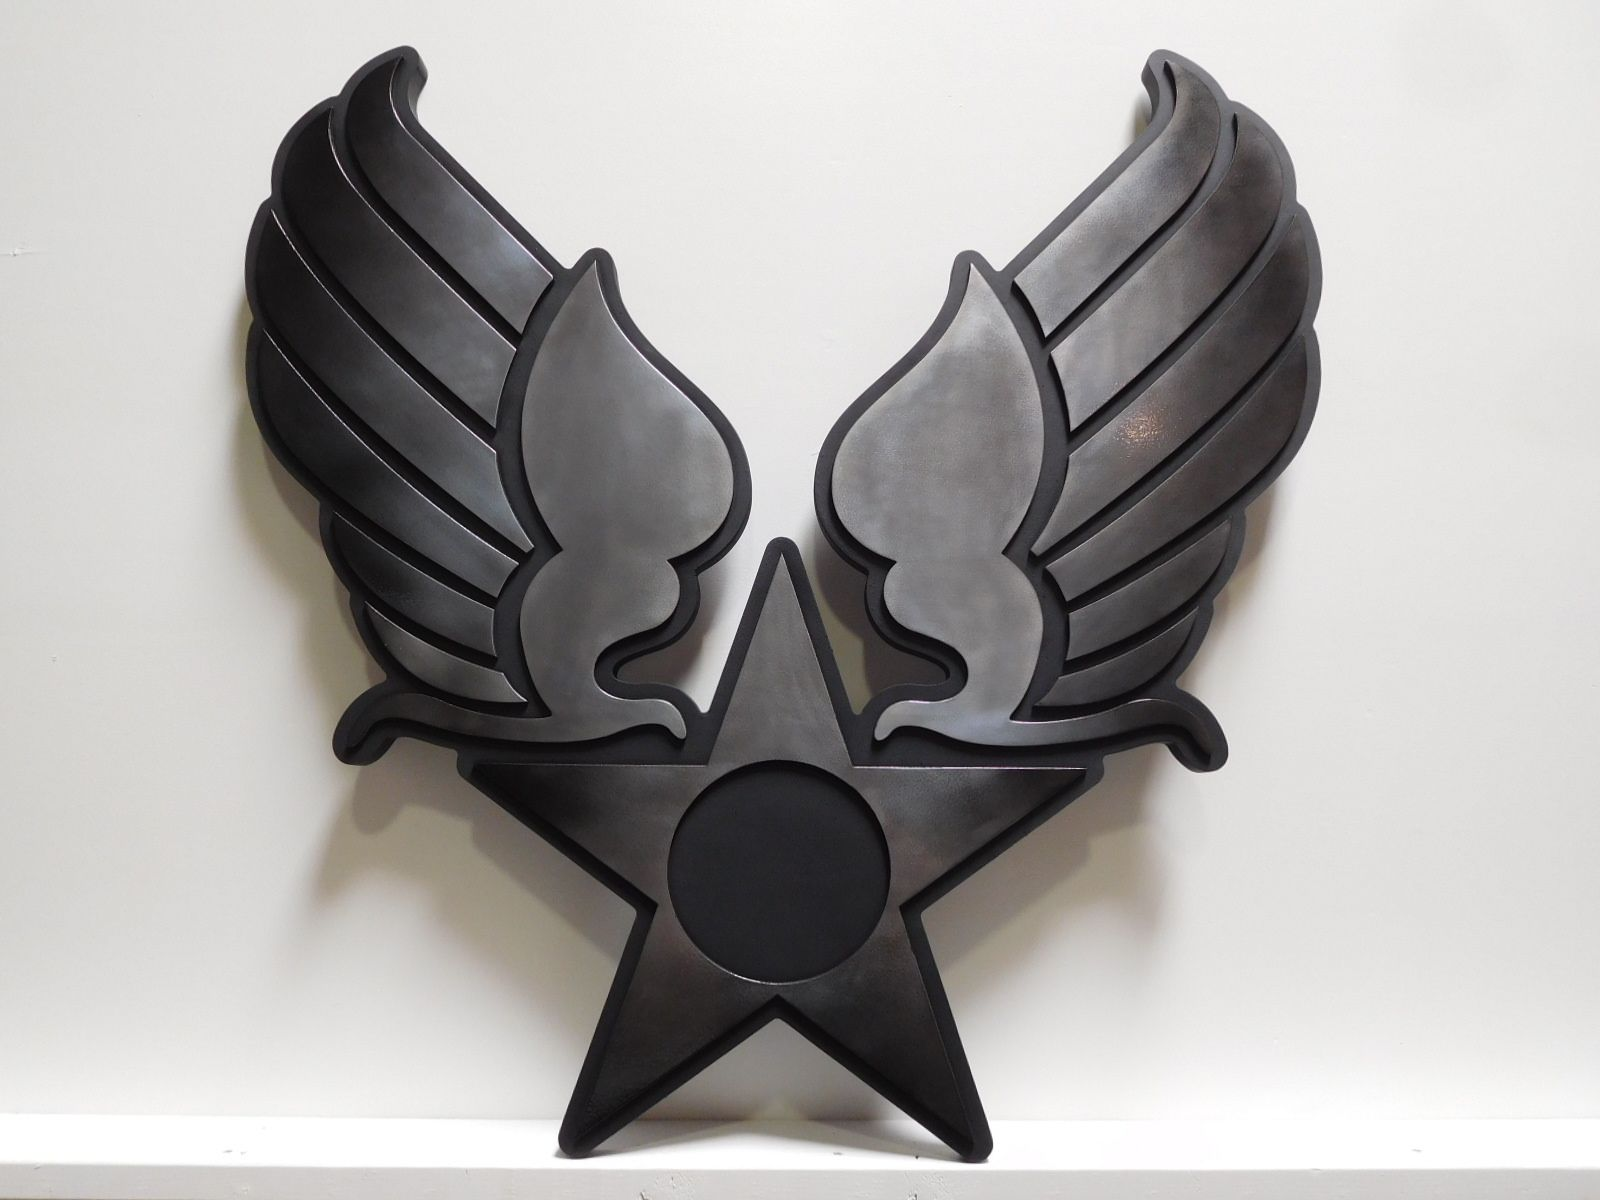 MP-2410- Carved Plaque of an Insignia / Crest for a US Army Unit , 2.5D Painted in Black and Metallic Silver